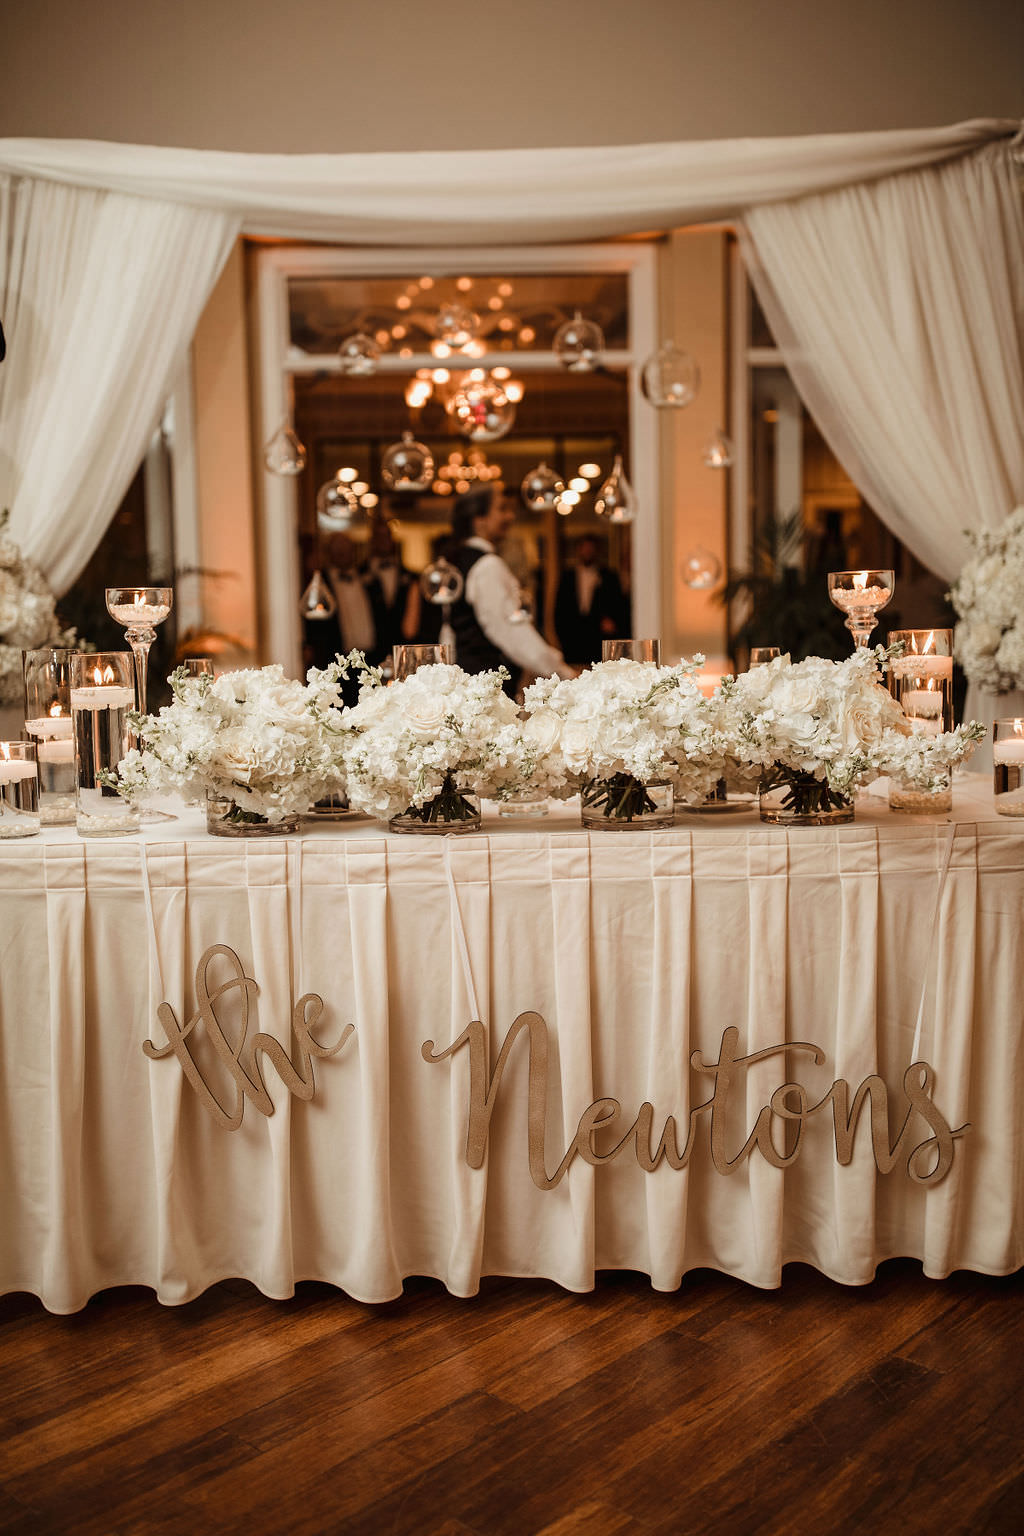 Classic, Formal Wedding Reception Decor, Sweetheart Table with Ivory Linen, Custom Laser Cut Name Sign, White Floral Arrangement Centerpieces and Floating Candles